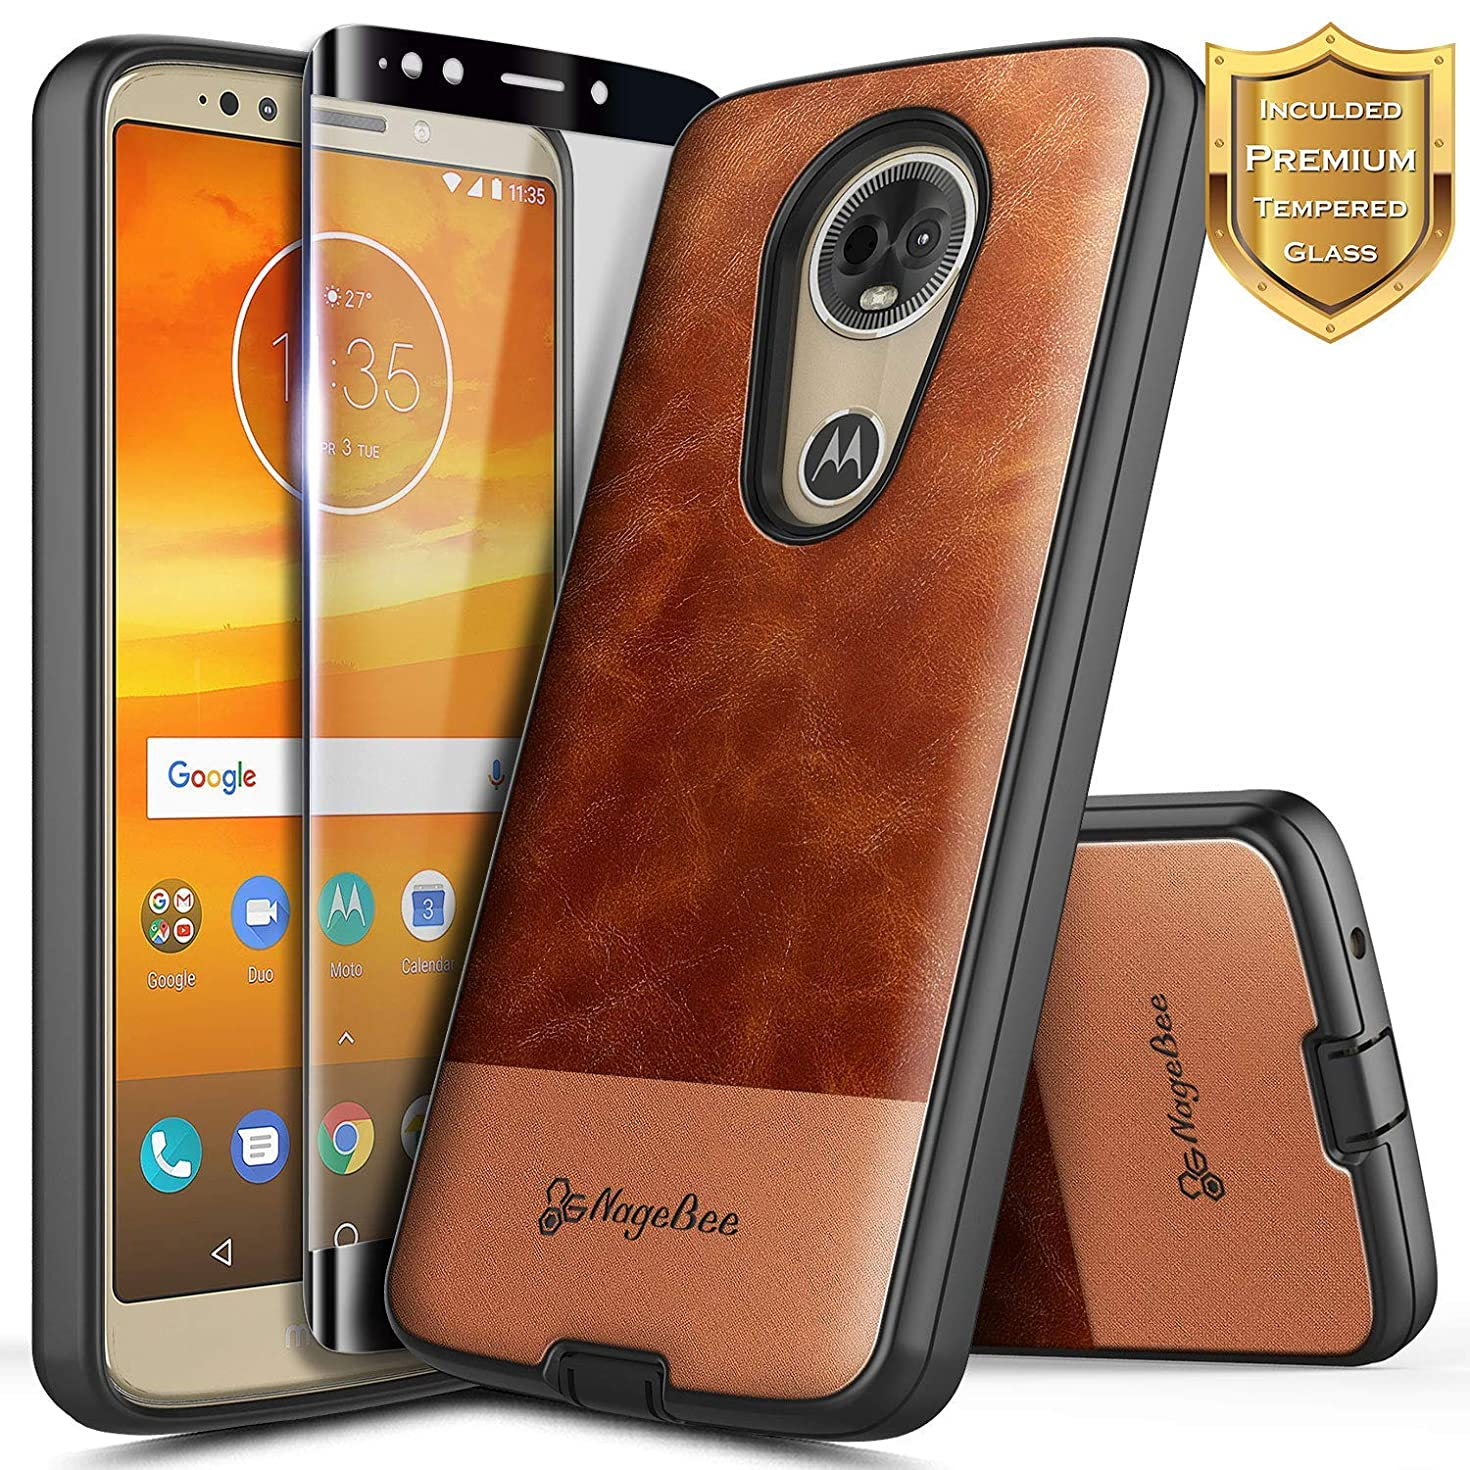 Moto E5 Plus Case, Moto E5 Supra Case w/[Full Coverage Tempered Glass Screen Protector], NageBee Premium [Cowhide Leather] Shockproof Hybrid Rugged Case for Motorola Moto E Plus (5th Gen) -Brown